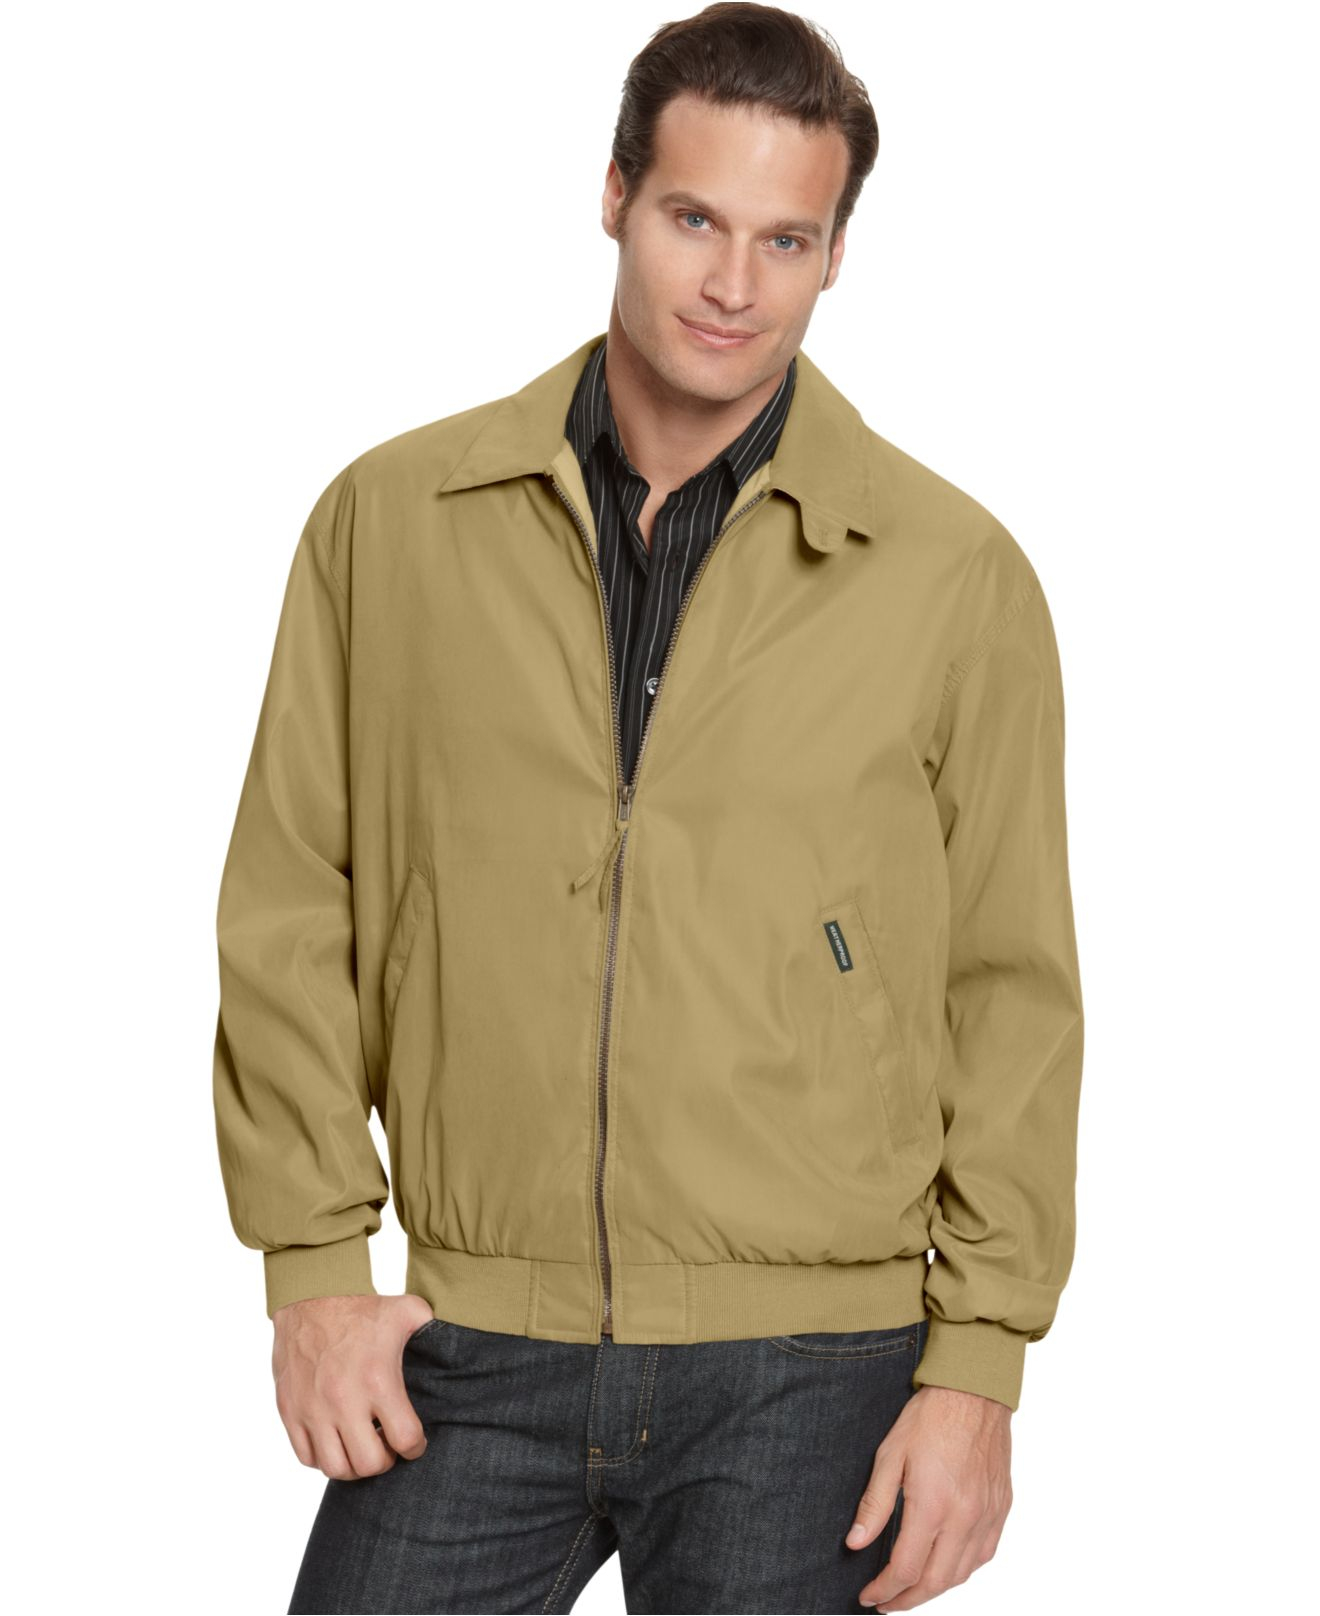 Perry Ellis Jacket